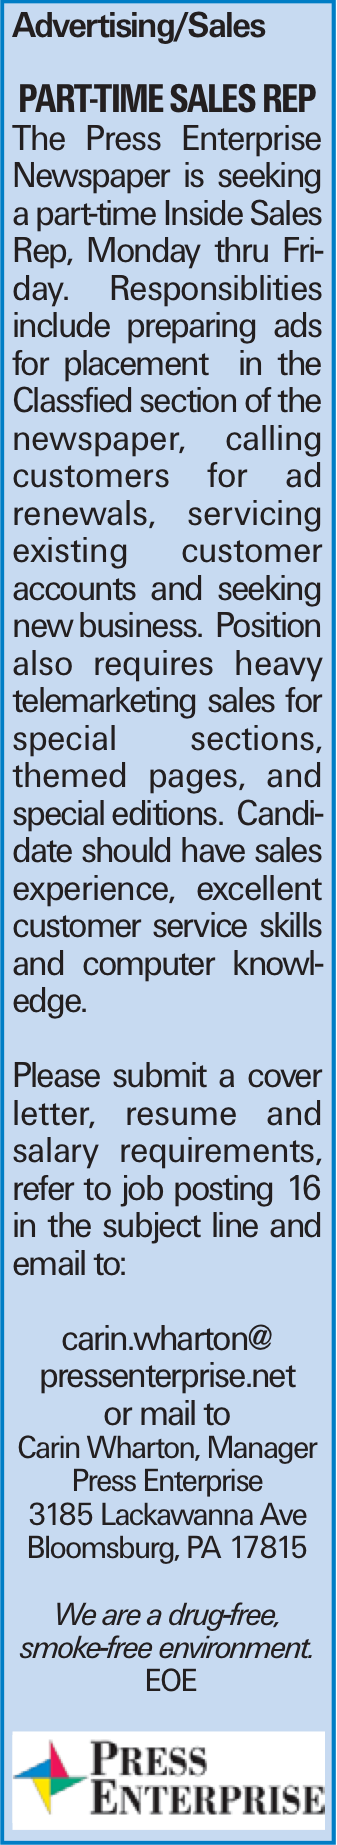 Advertising/Sales Part-Time Sales REP The Press Enterprise Newspaper is seeking a part-time Inside Sales Rep, Monday thru Friday. Responsiblities include preparing ads for placement in the Classfied section of the newspaper, calling customers for ad renewals, servicing existing customer accounts and seeking new business. Position also requires heavy telemarketing sales for special sections, themed pages, and special editions. Candidate should have sales experience, excellent customer service skills and computer knowledge. Please submit a cover letter, resume and salary requirements, refer to job posting 16 in the subject line and email to: carin.wharton@ pressenterprise.net or mail to Carin Wharton, Manager Press Enterprise 3185 Lackawanna Ave Bloomsburg, PA 17815 We are a drug-free, smoke-free environment. EOE